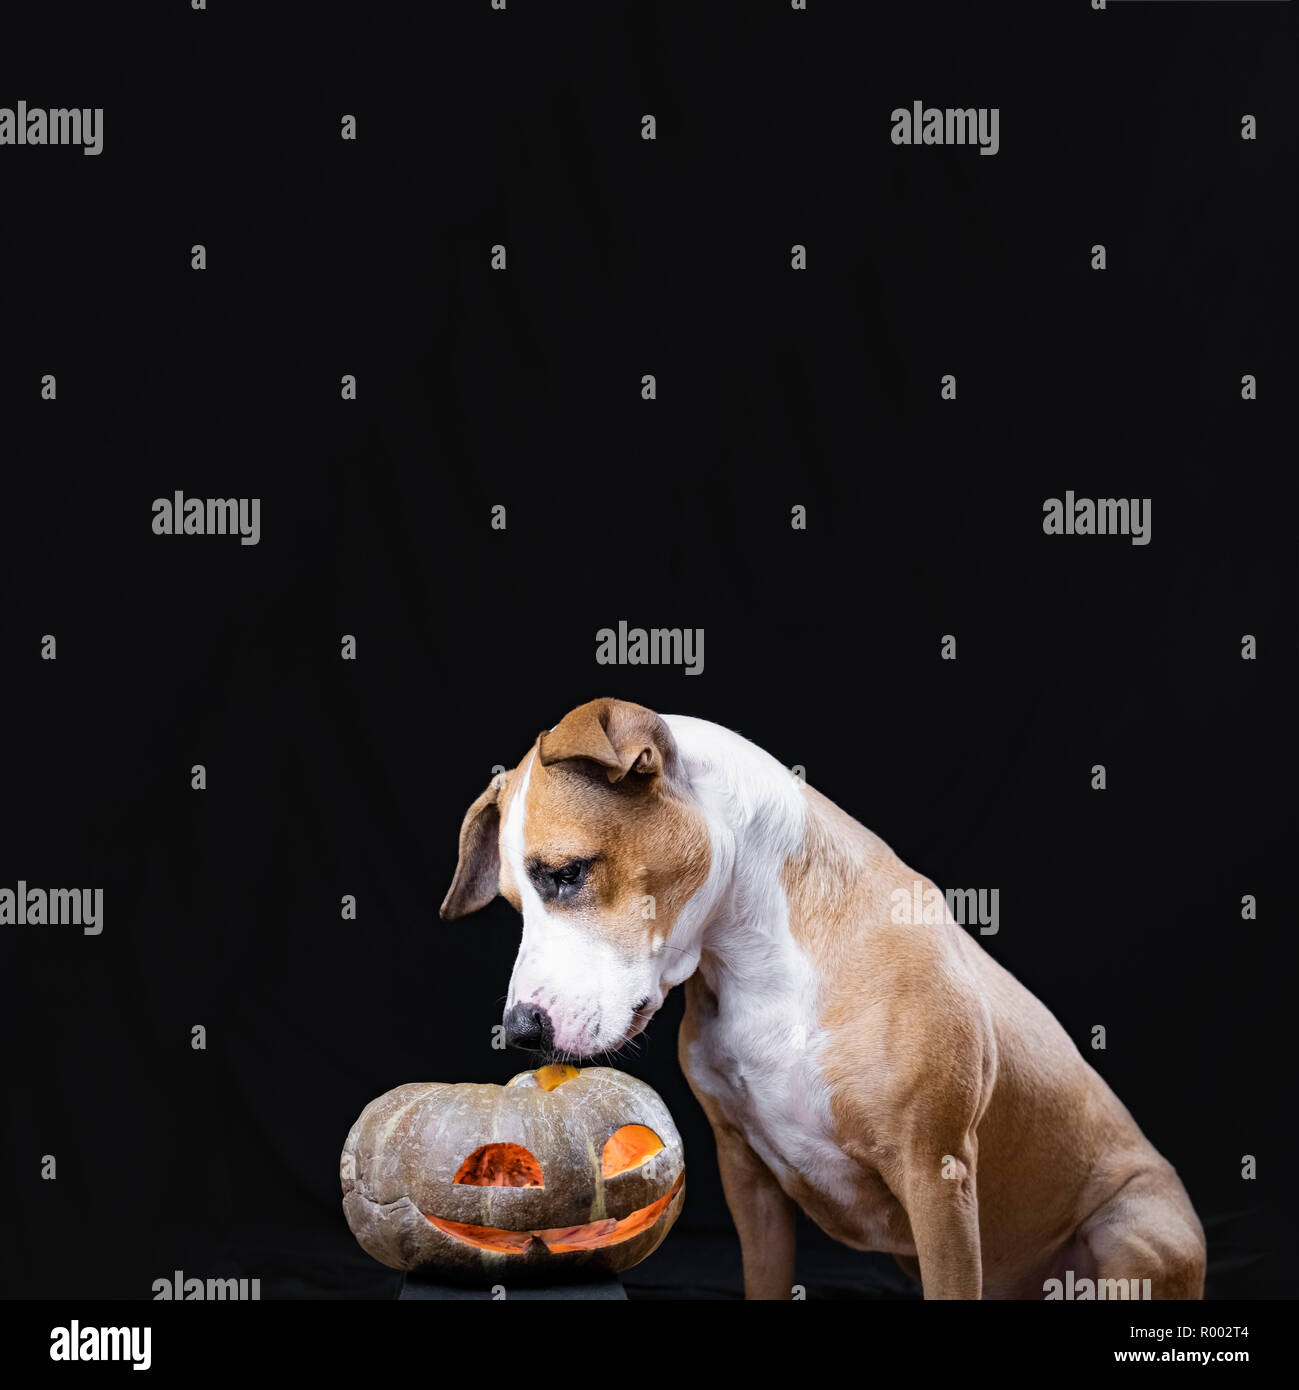 Dog and halloween pumpkin lantern on black background. Cute staffordshire terrier puppy sits and looks at carved jack'o'lantern face - Stock Image